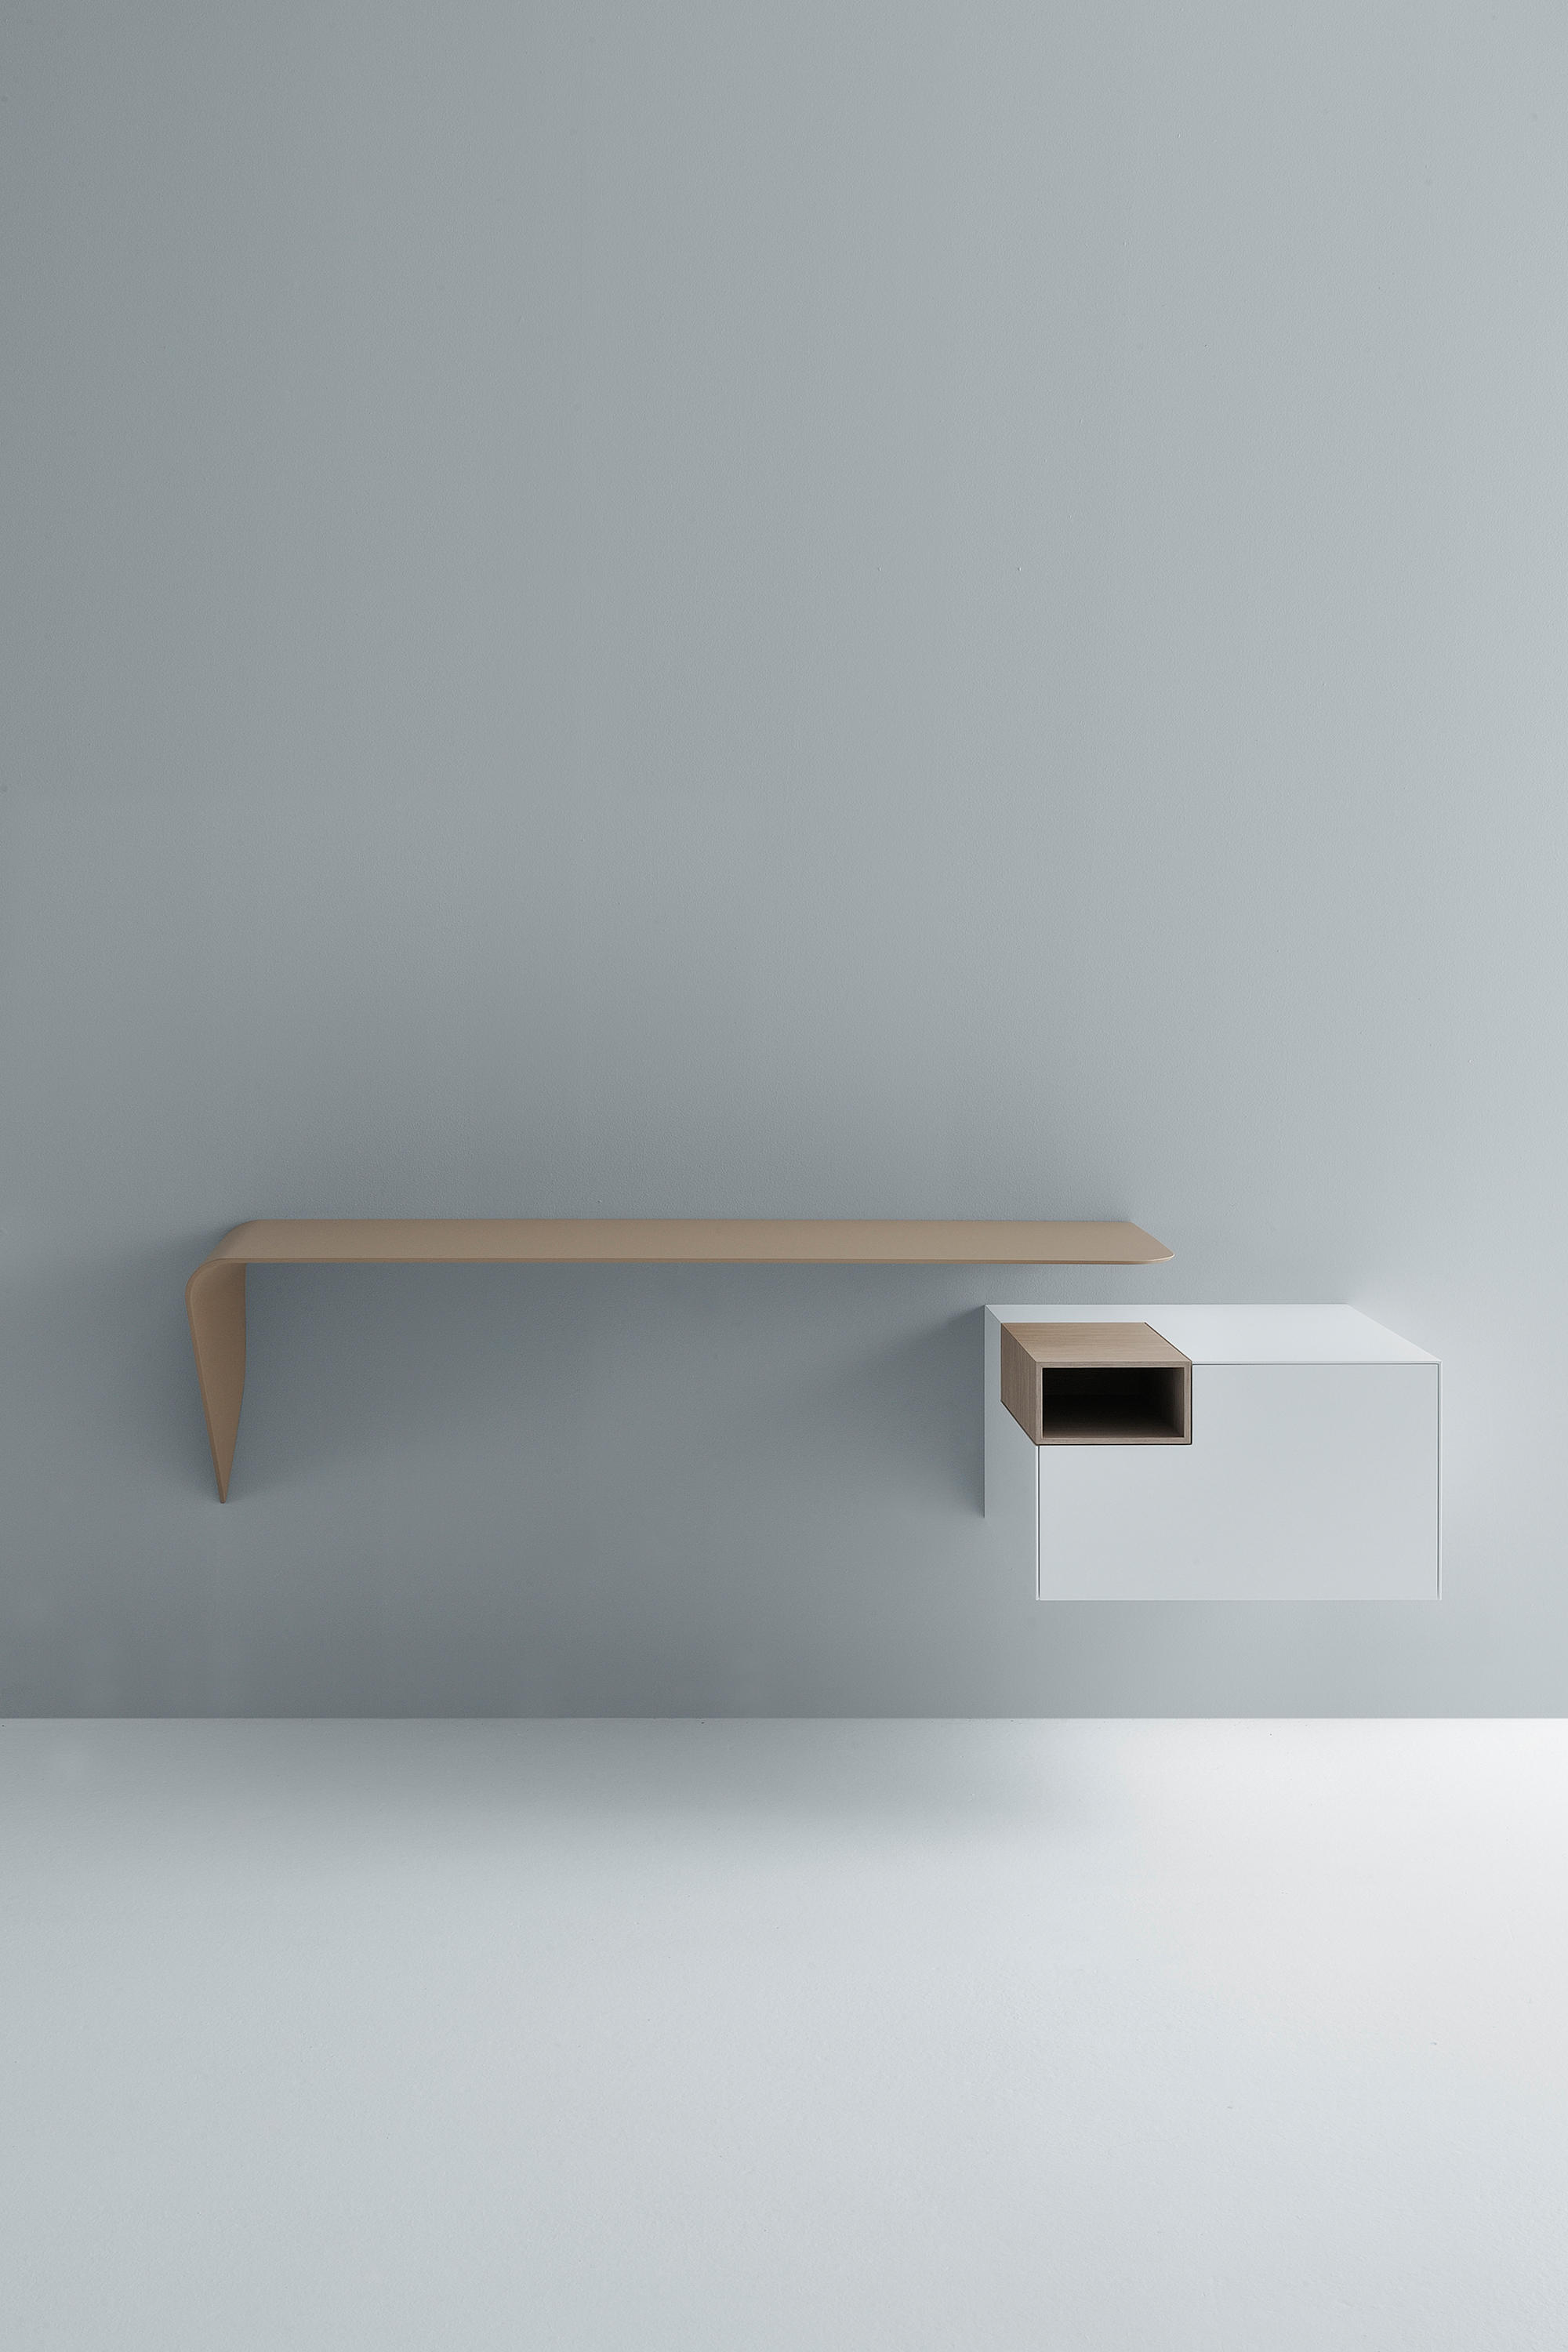 mamba shelf desk desks from mdf italia architonic. Black Bedroom Furniture Sets. Home Design Ideas